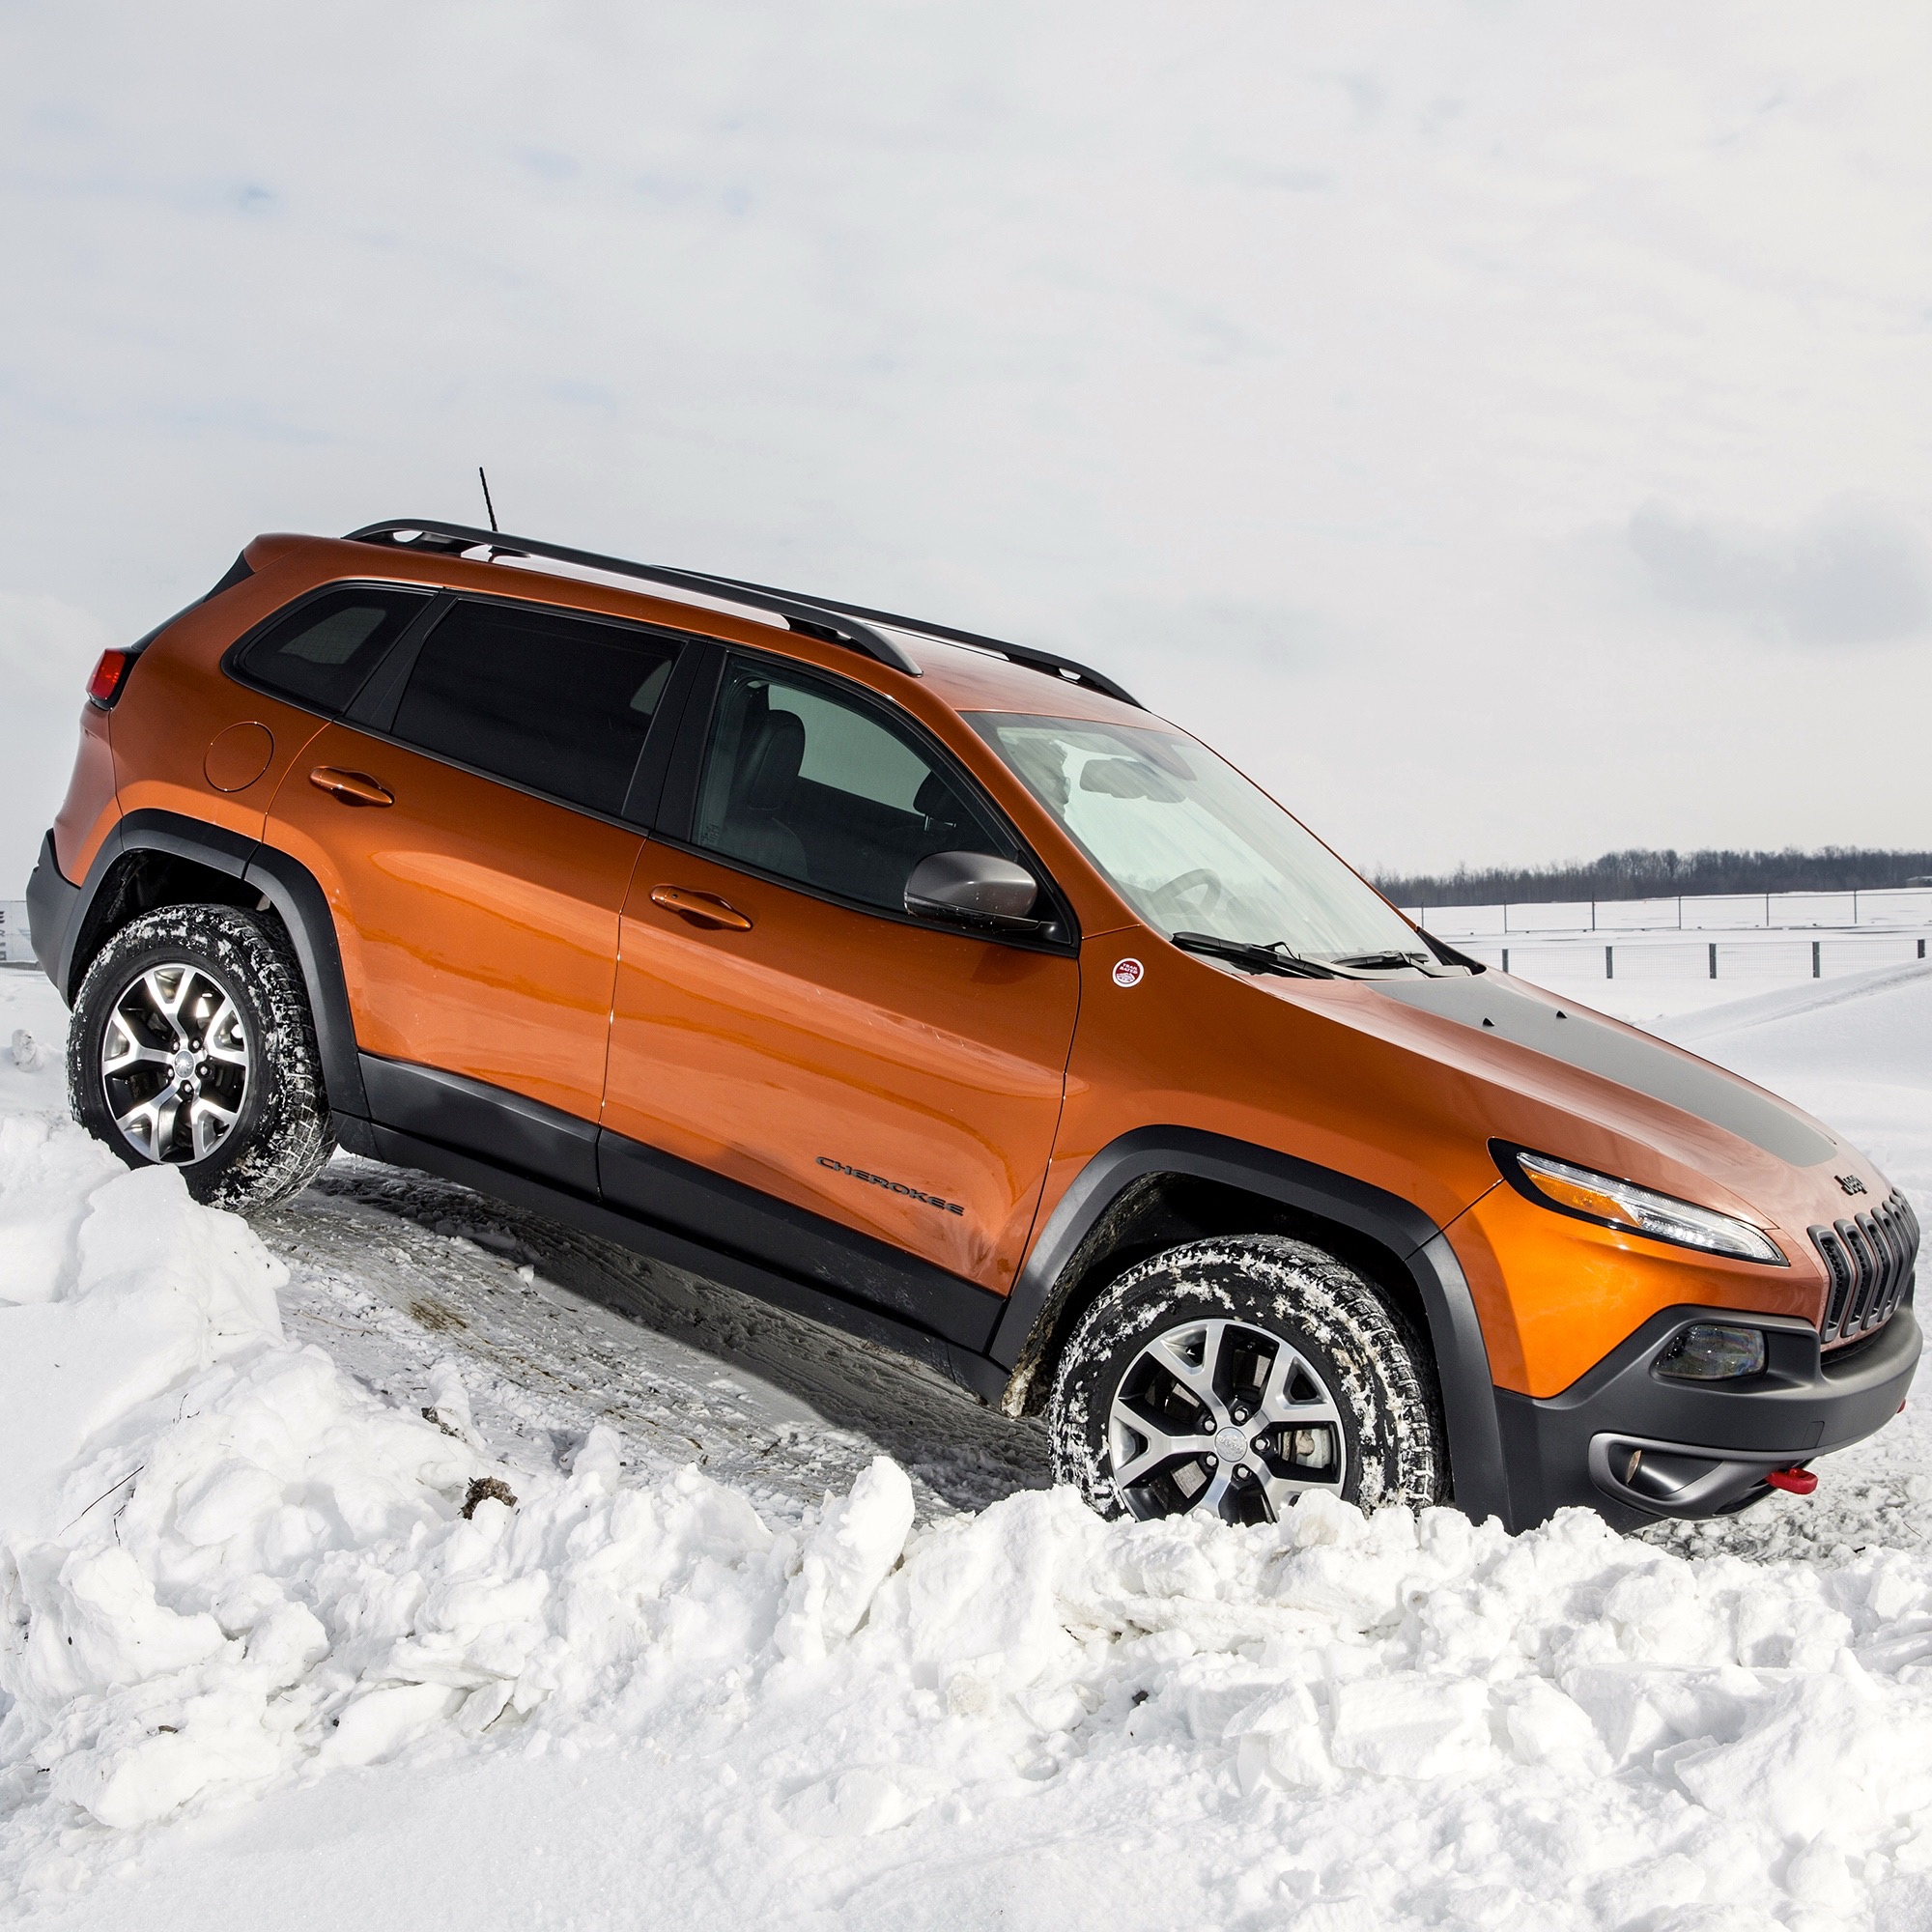 Jeep Cheroker: Off-Road In The Snow With Jeep